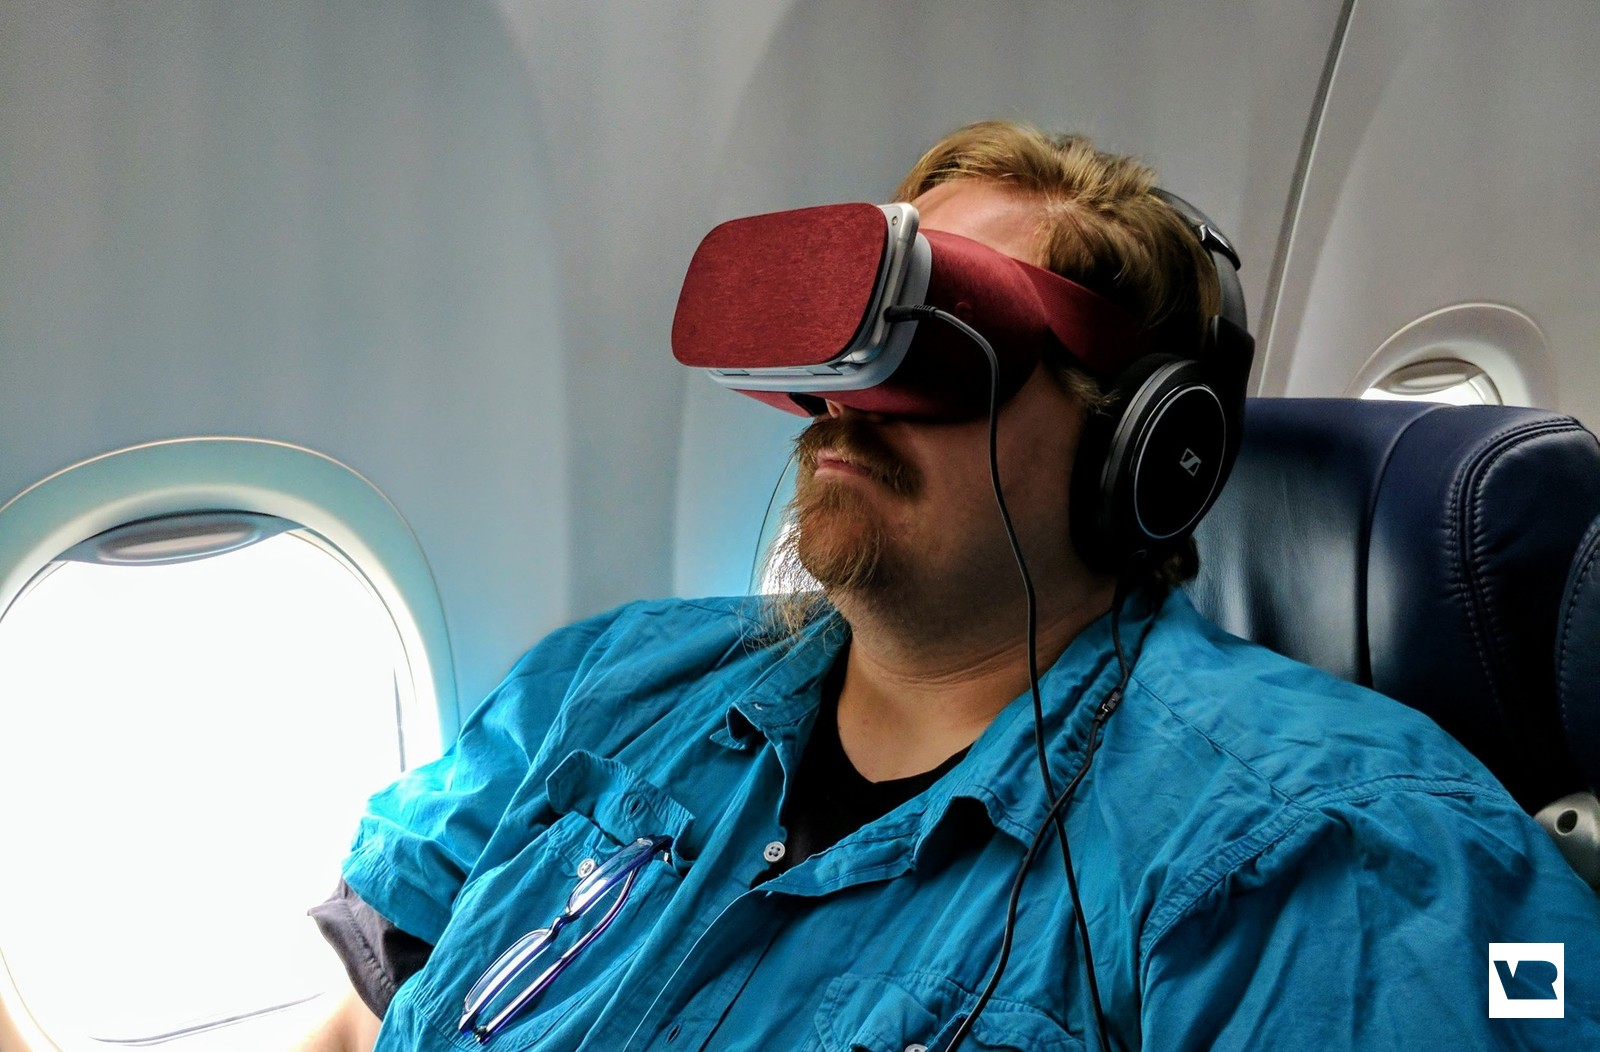 Flying with VR